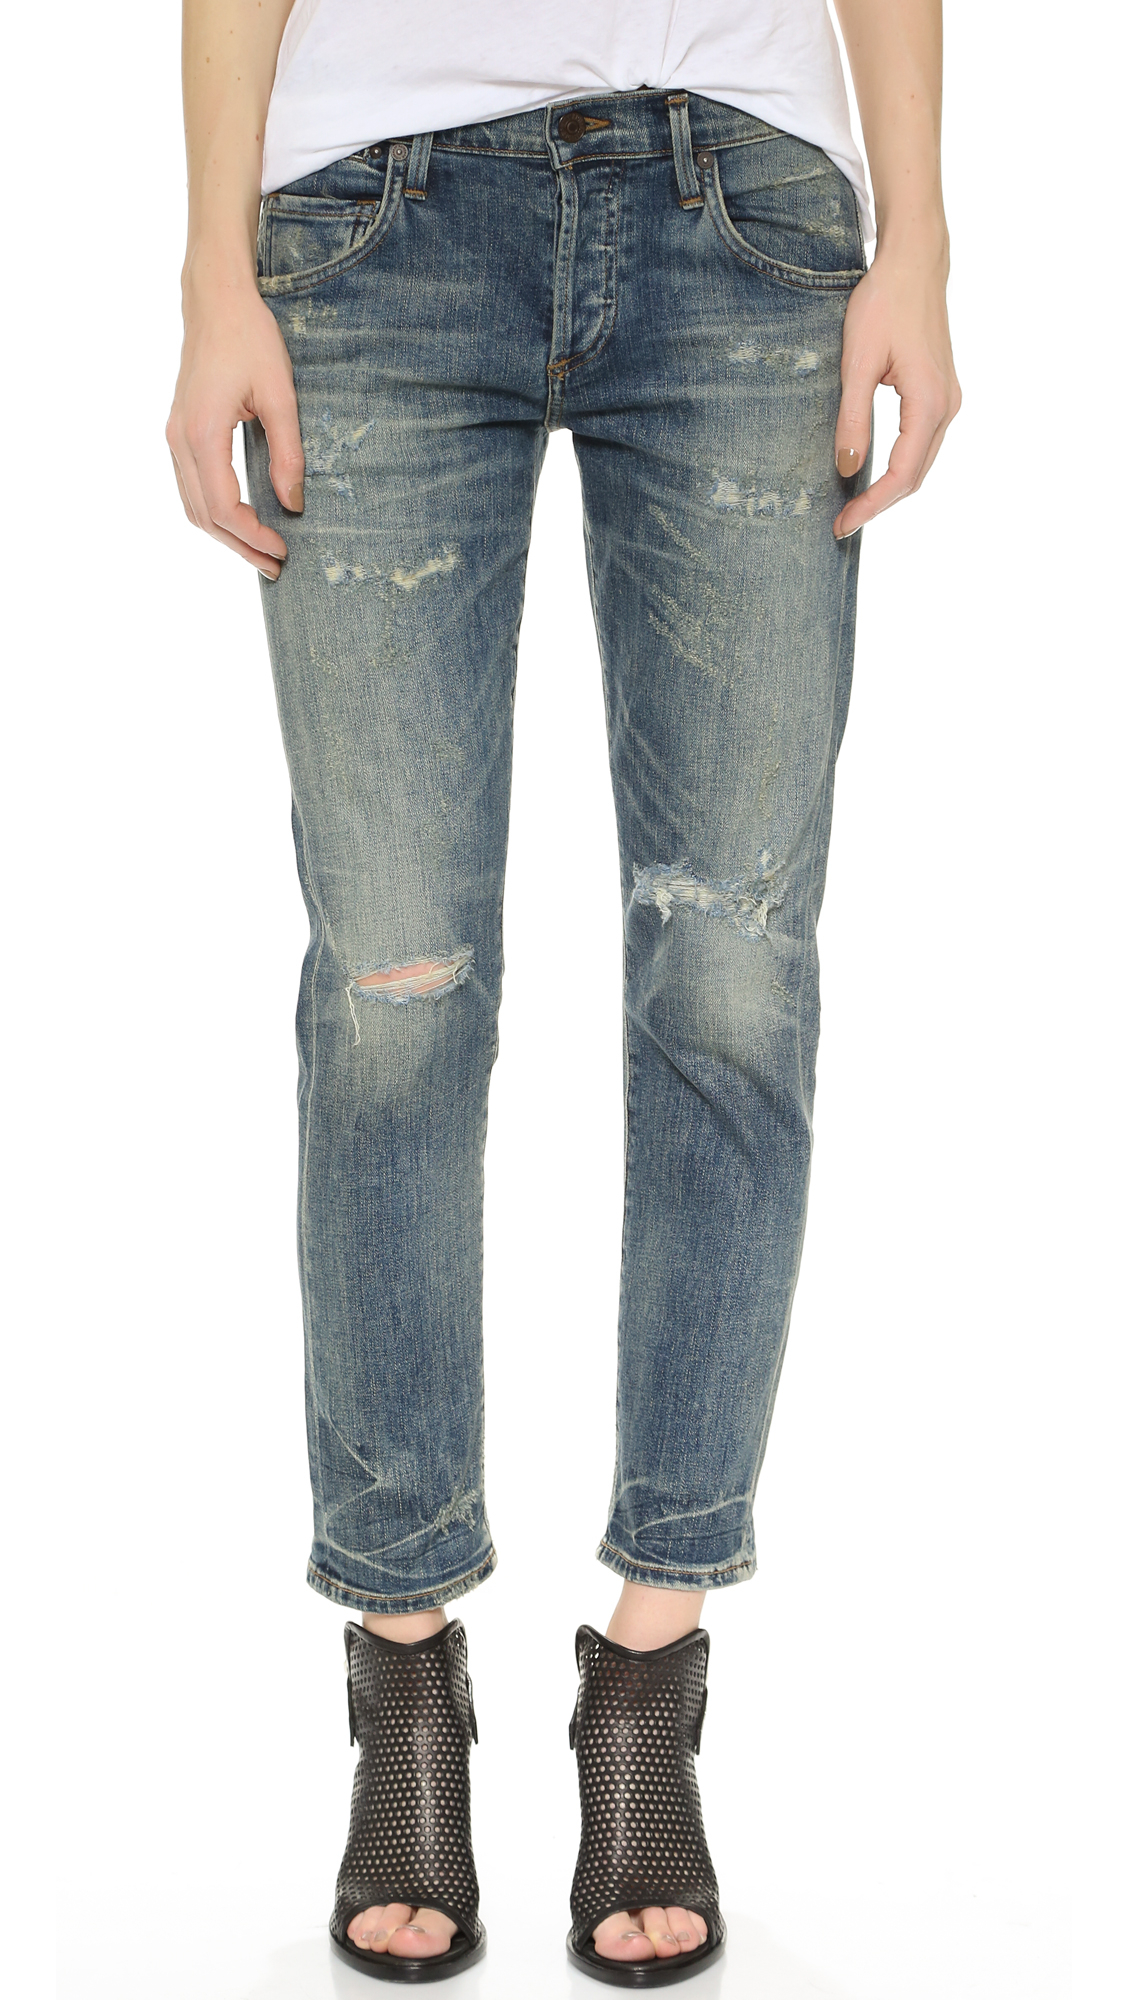 Citizens of humanity Emerson Slim Fit Boyfriend Ankle Jeans - Rip It Up in Blue (Rip It Up) | Lyst